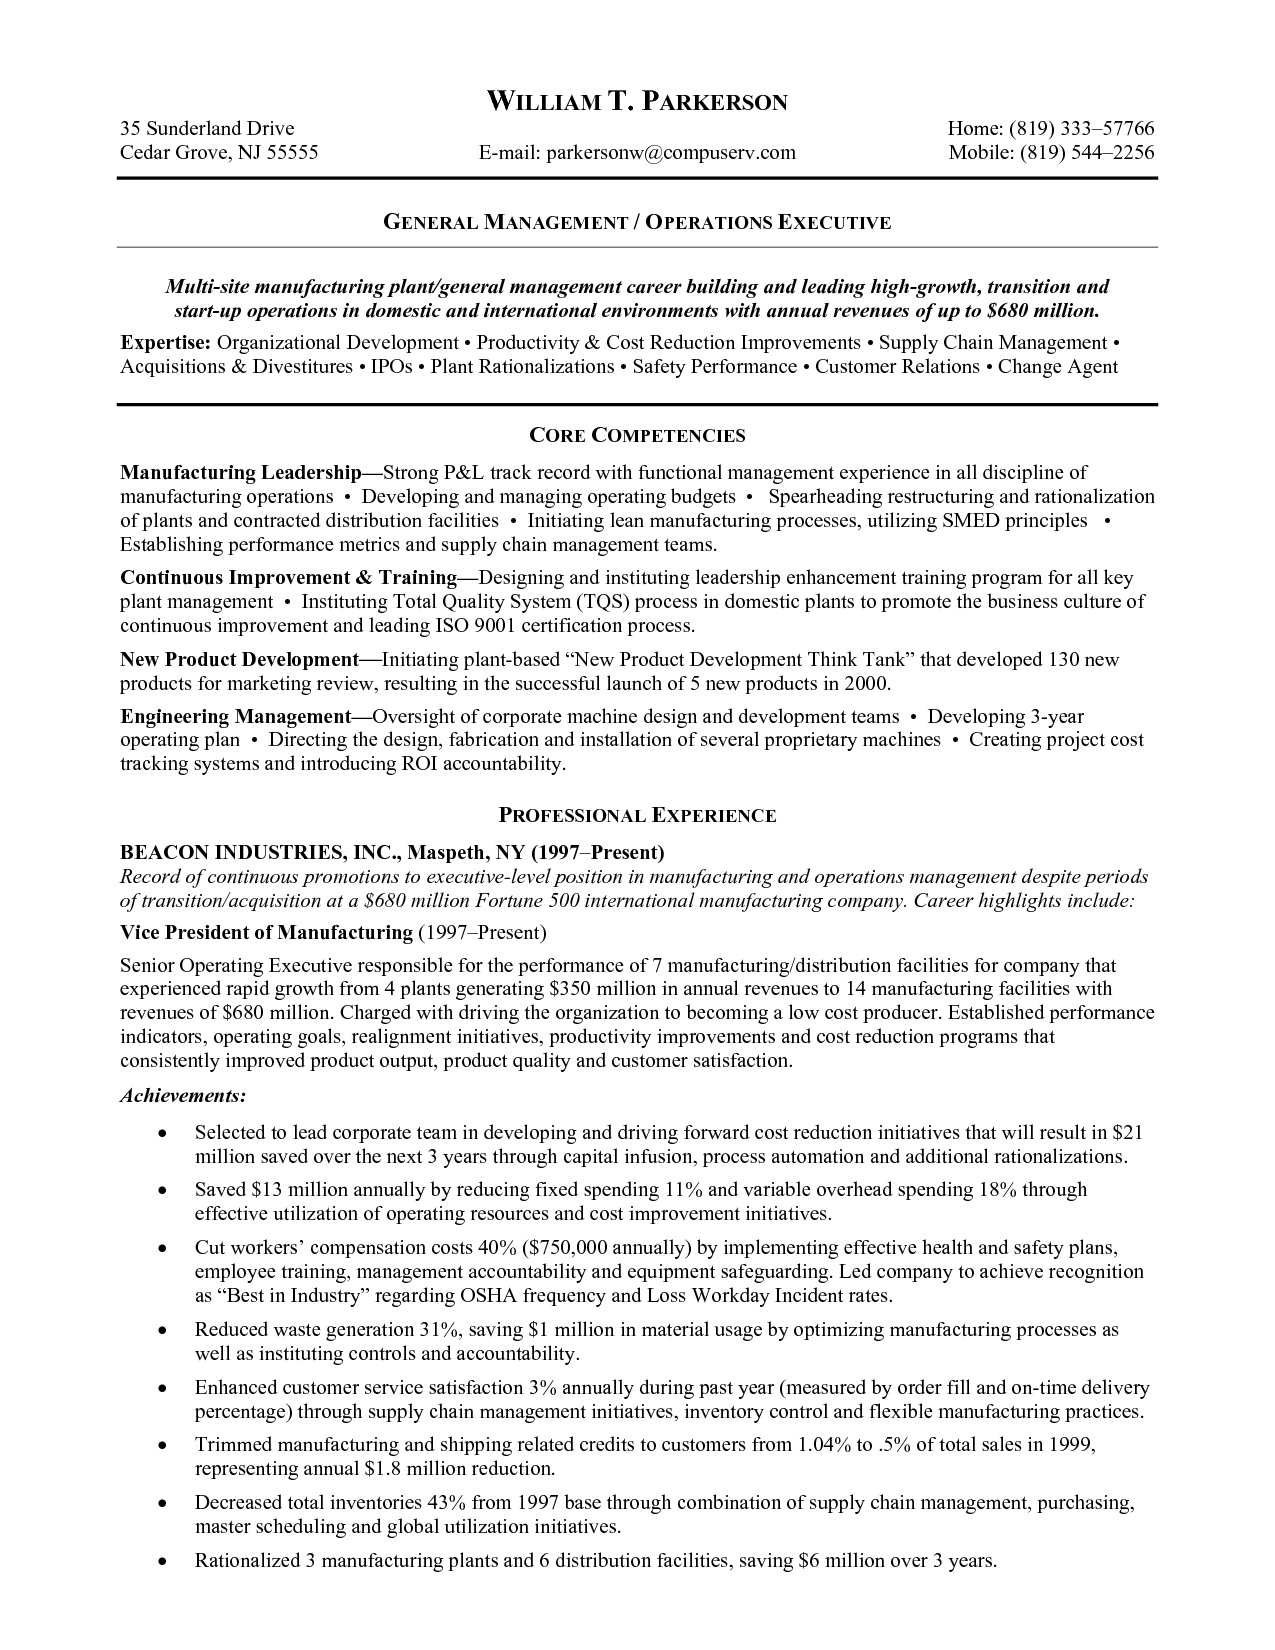 Professional Resume Builder Service General Manufacturing Resume Samples Objective Examples Free Edit